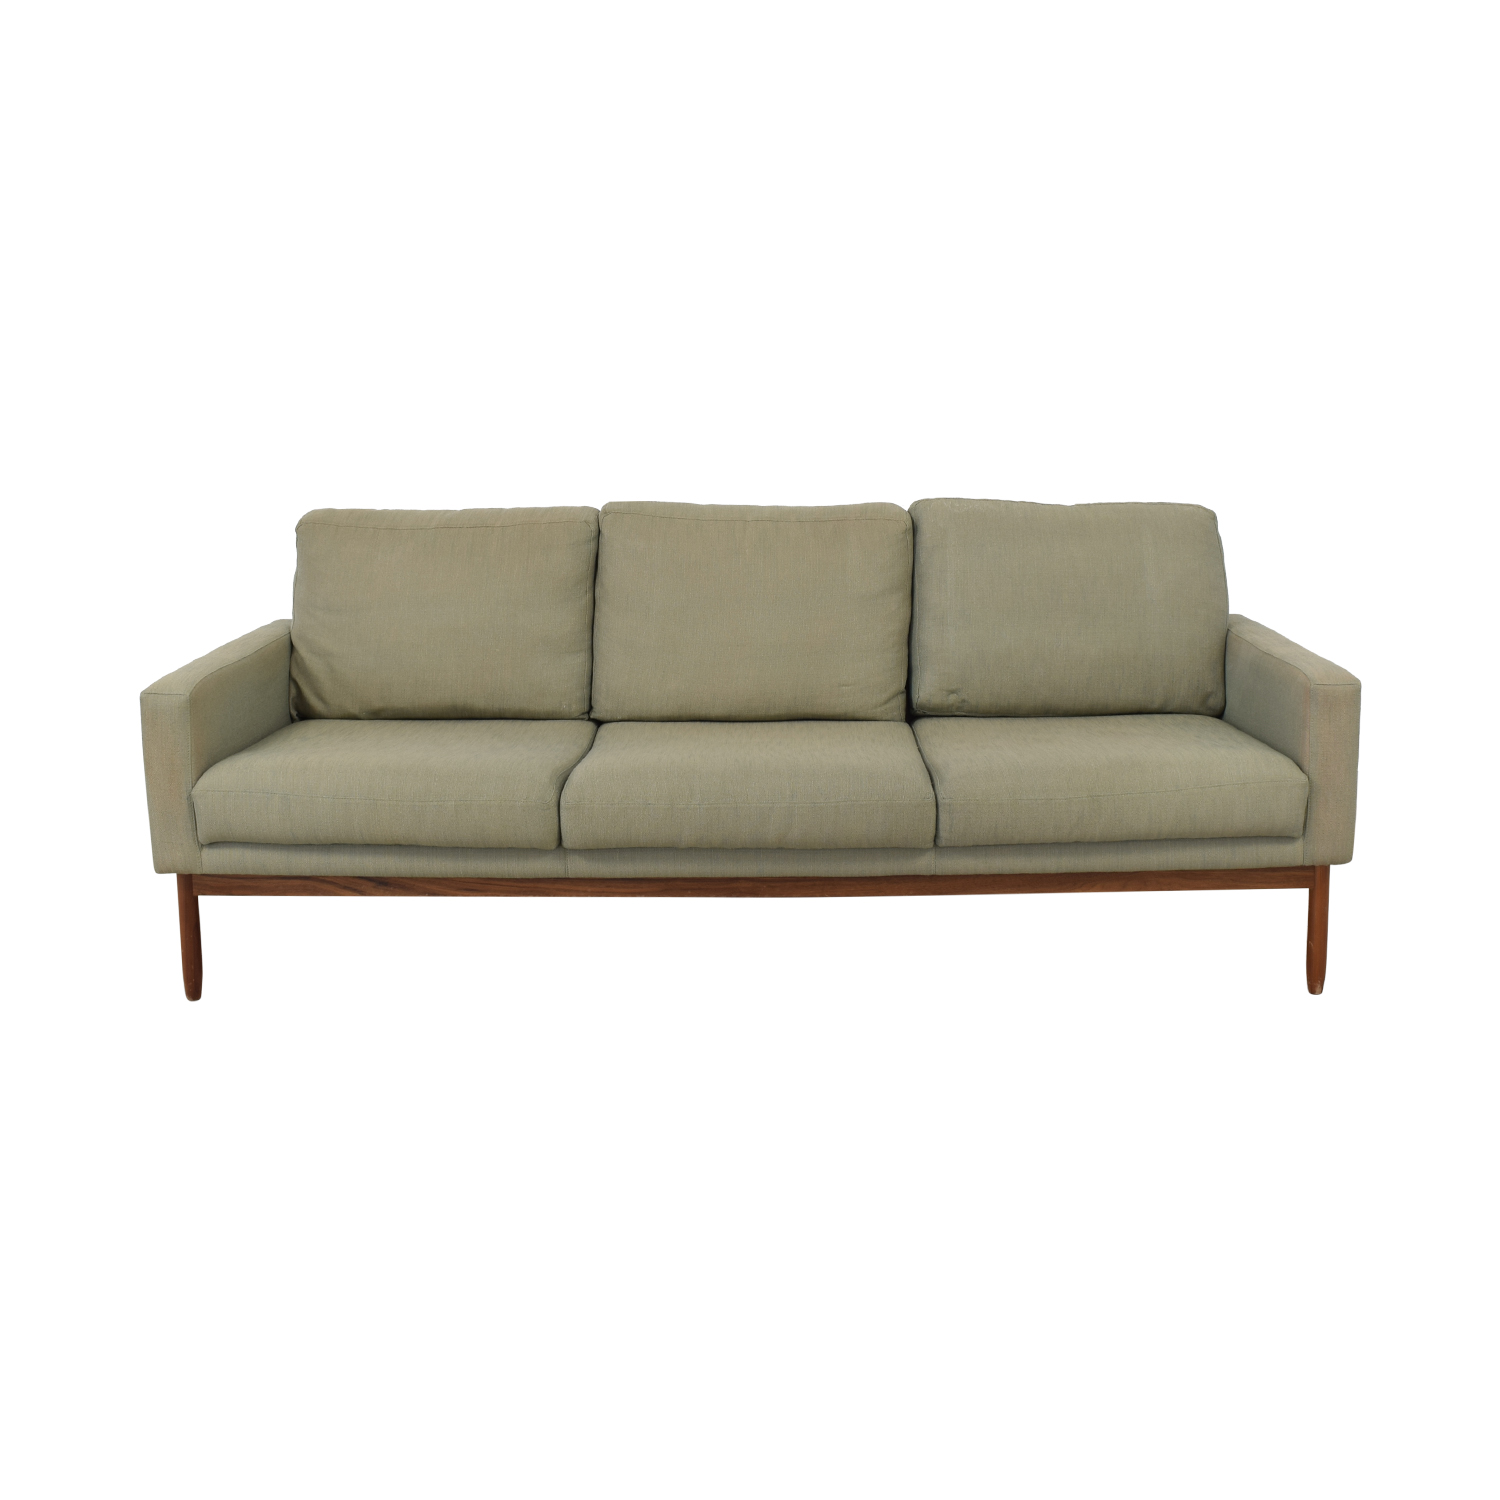 Design Within Reach Design Within Reach Raleigh Grey Three-Cushion Sofa used